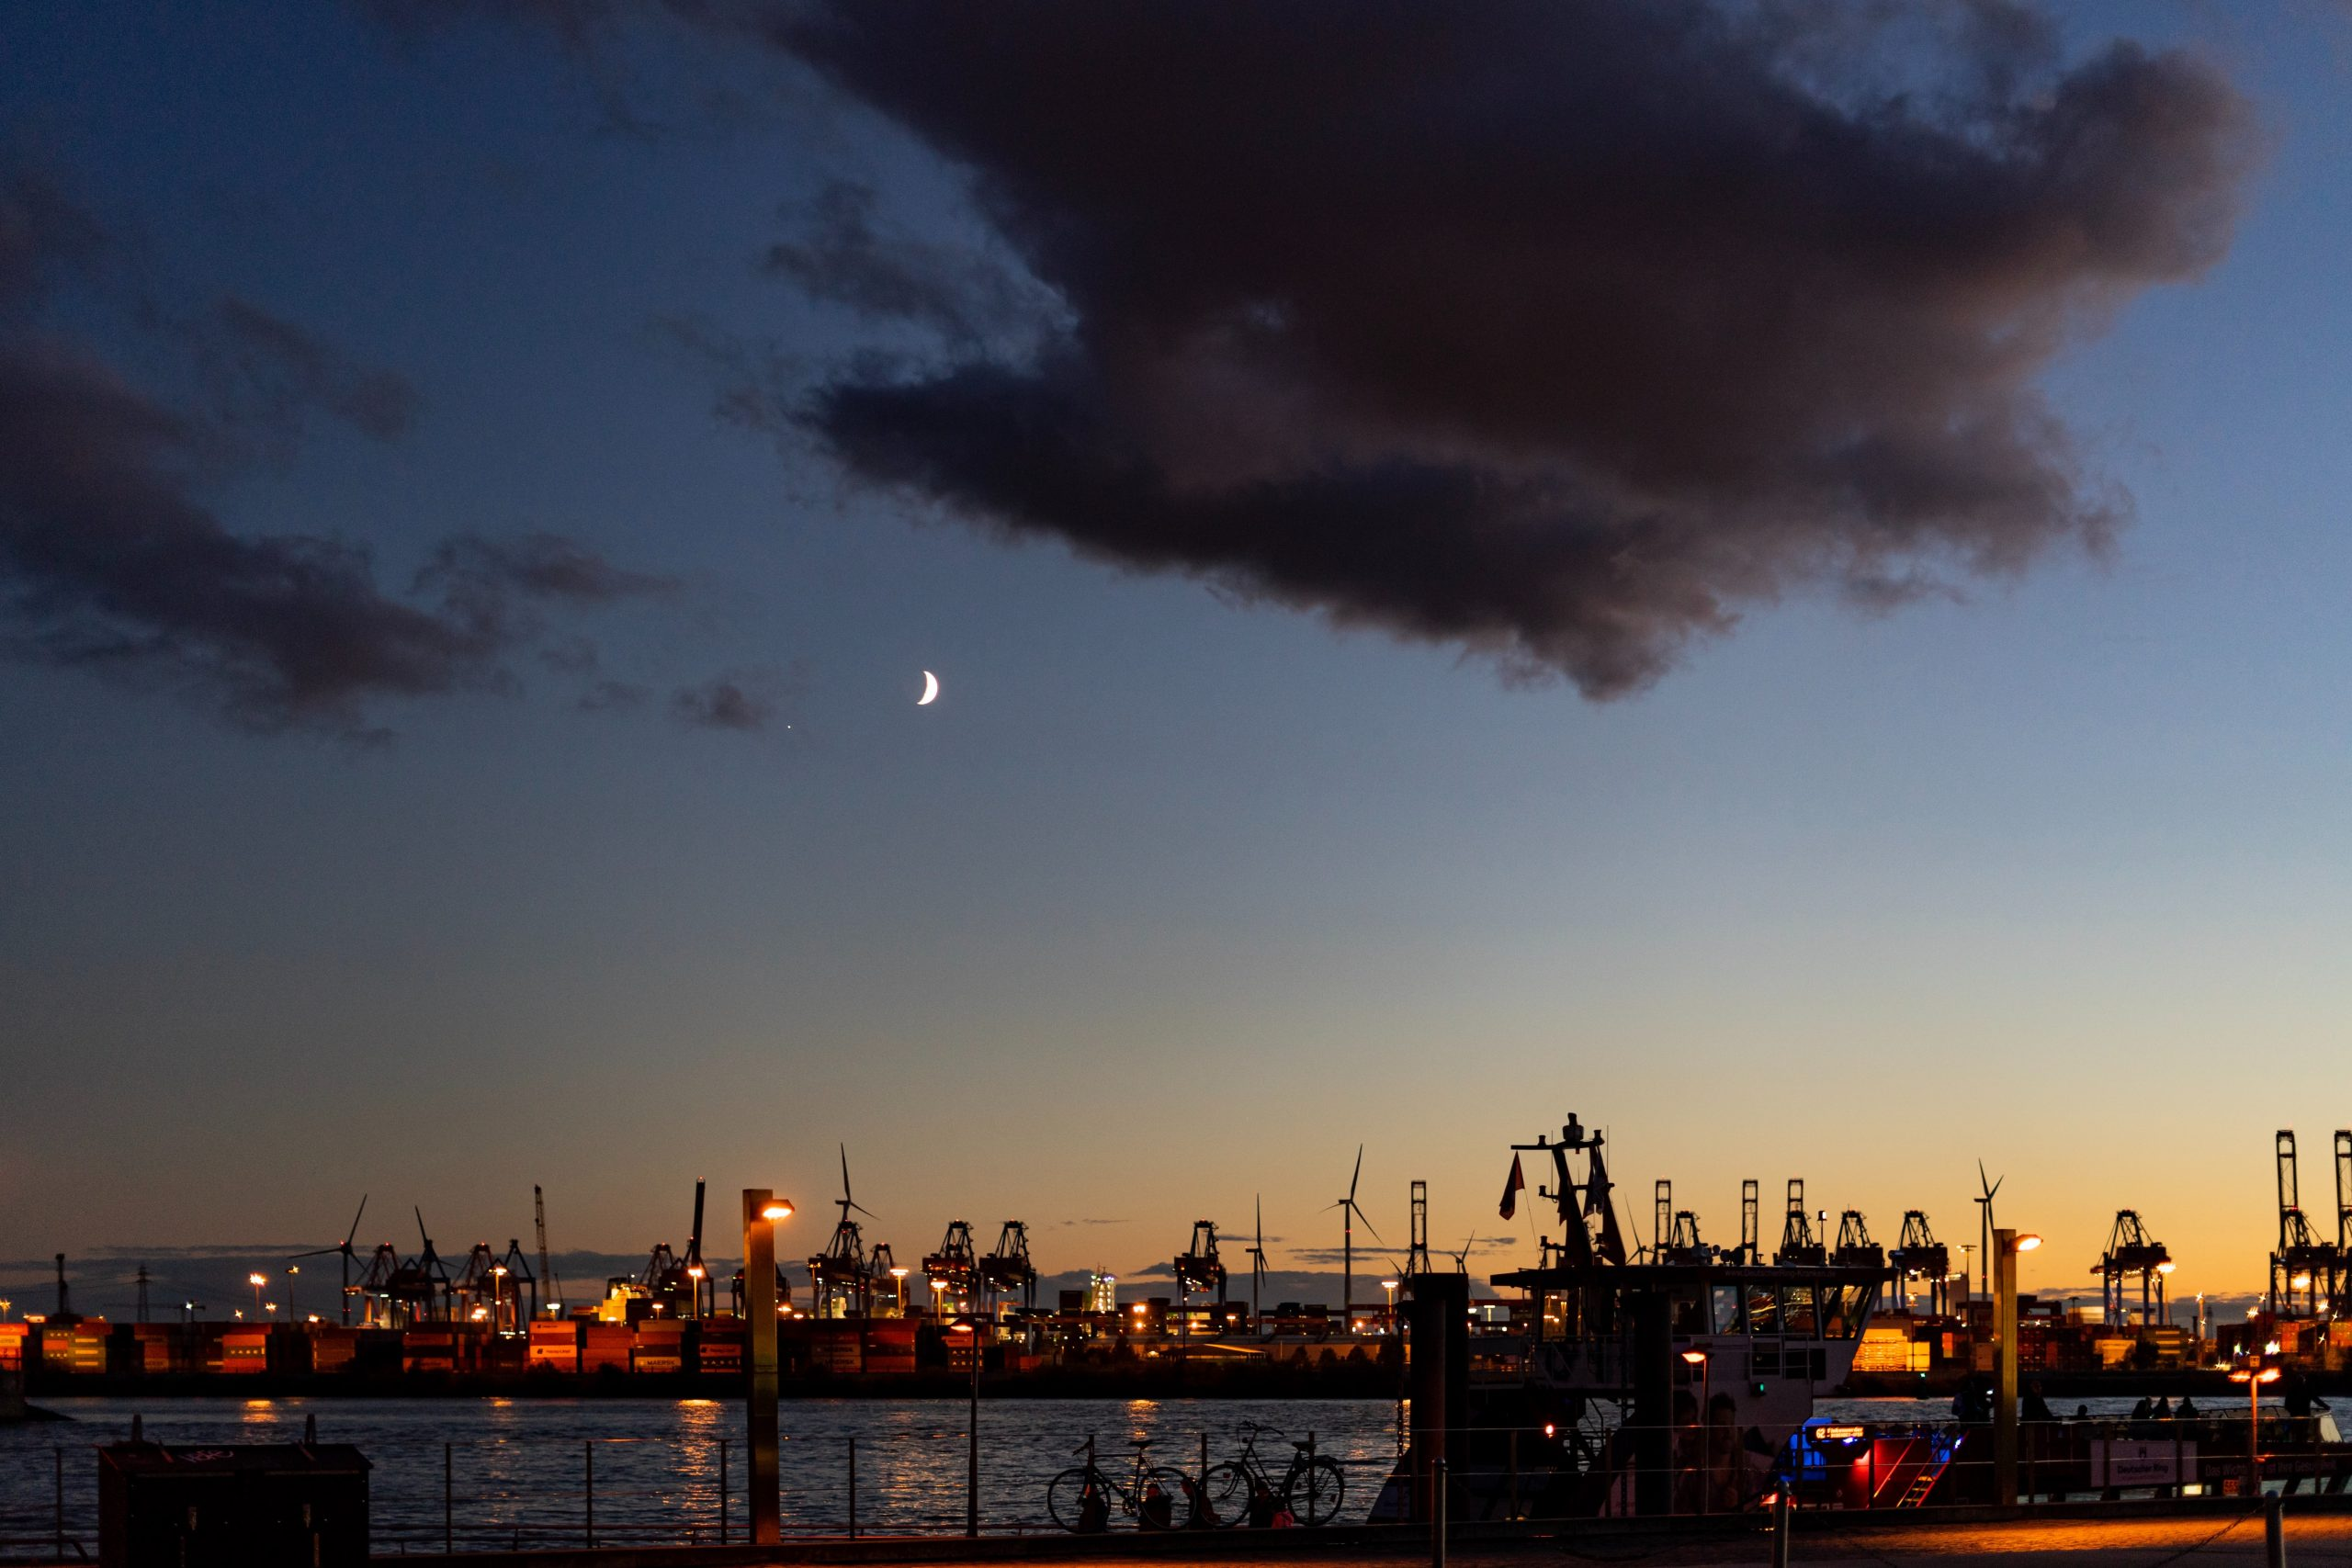 a shipping yard at night